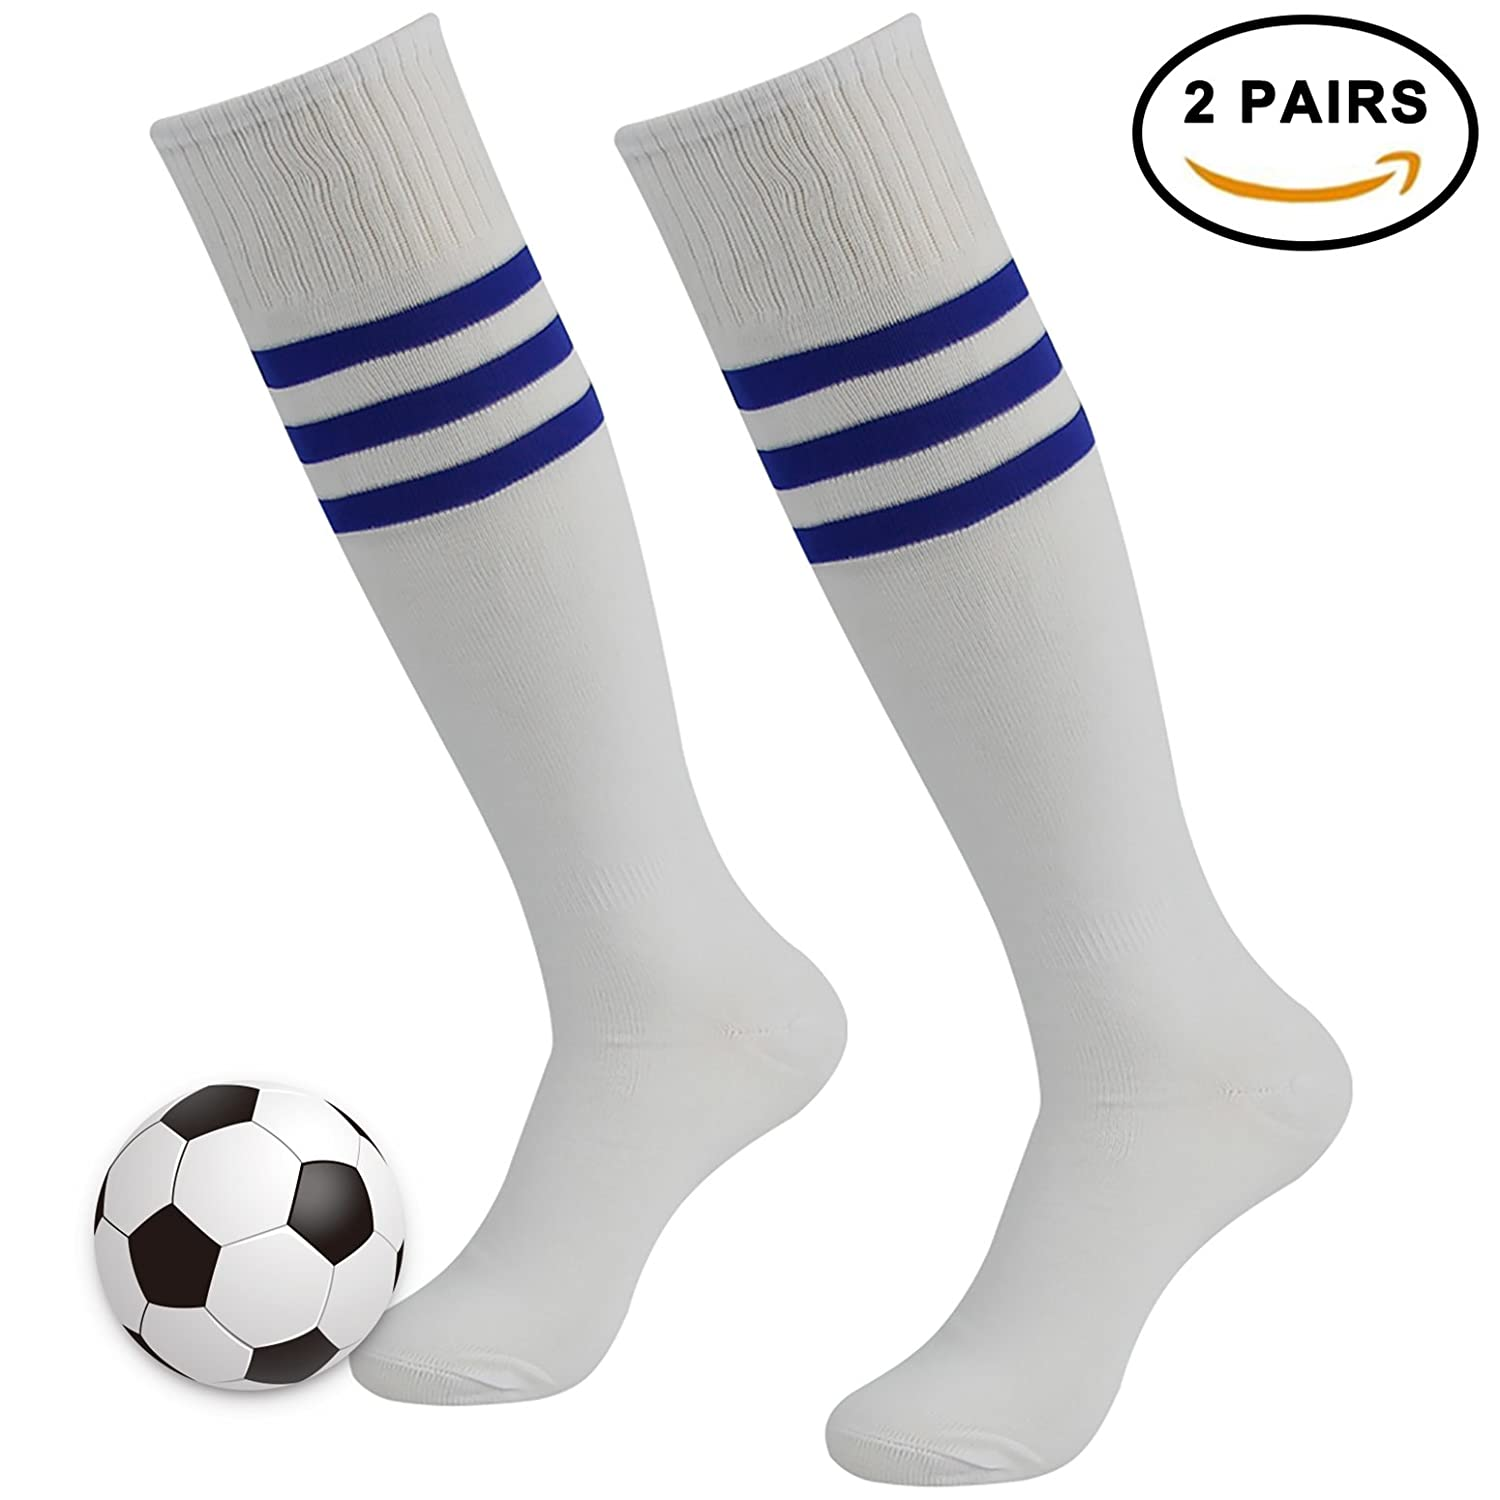 3streetユニセックスover calfストライプ/ソリッドロング冬スポーツSoccer Football Socks B077HTL4CQ 2 Pairs White with Blue Stripe 2 Pairs White with Blue Stripe